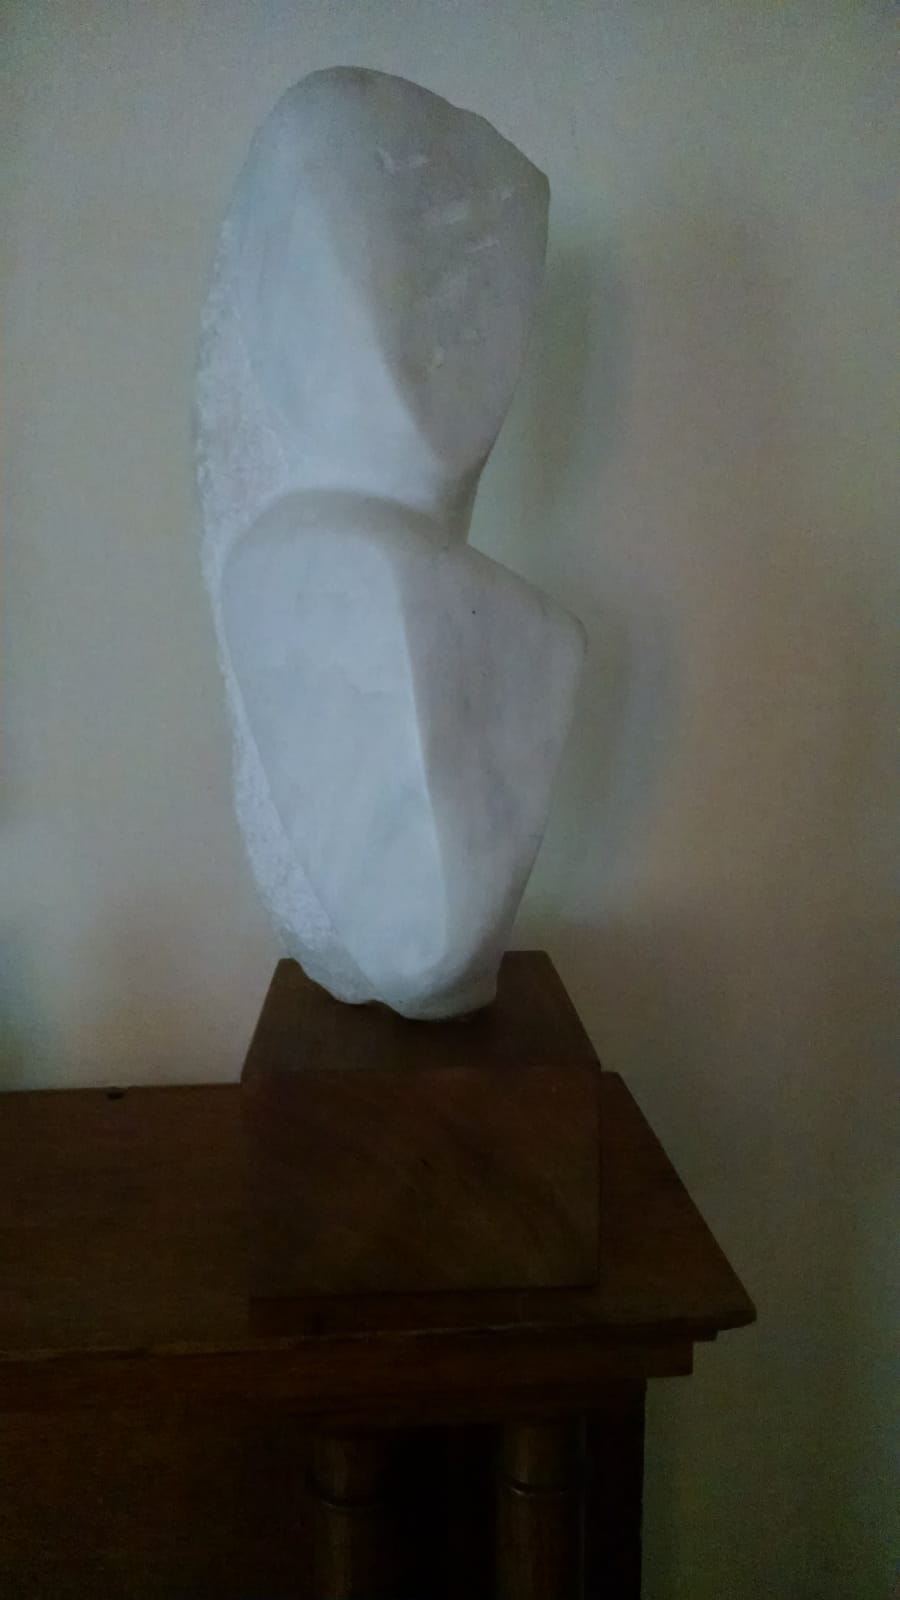 Bust of a woman artwork by Naomi Feinberg - art listed for sale on Artplode